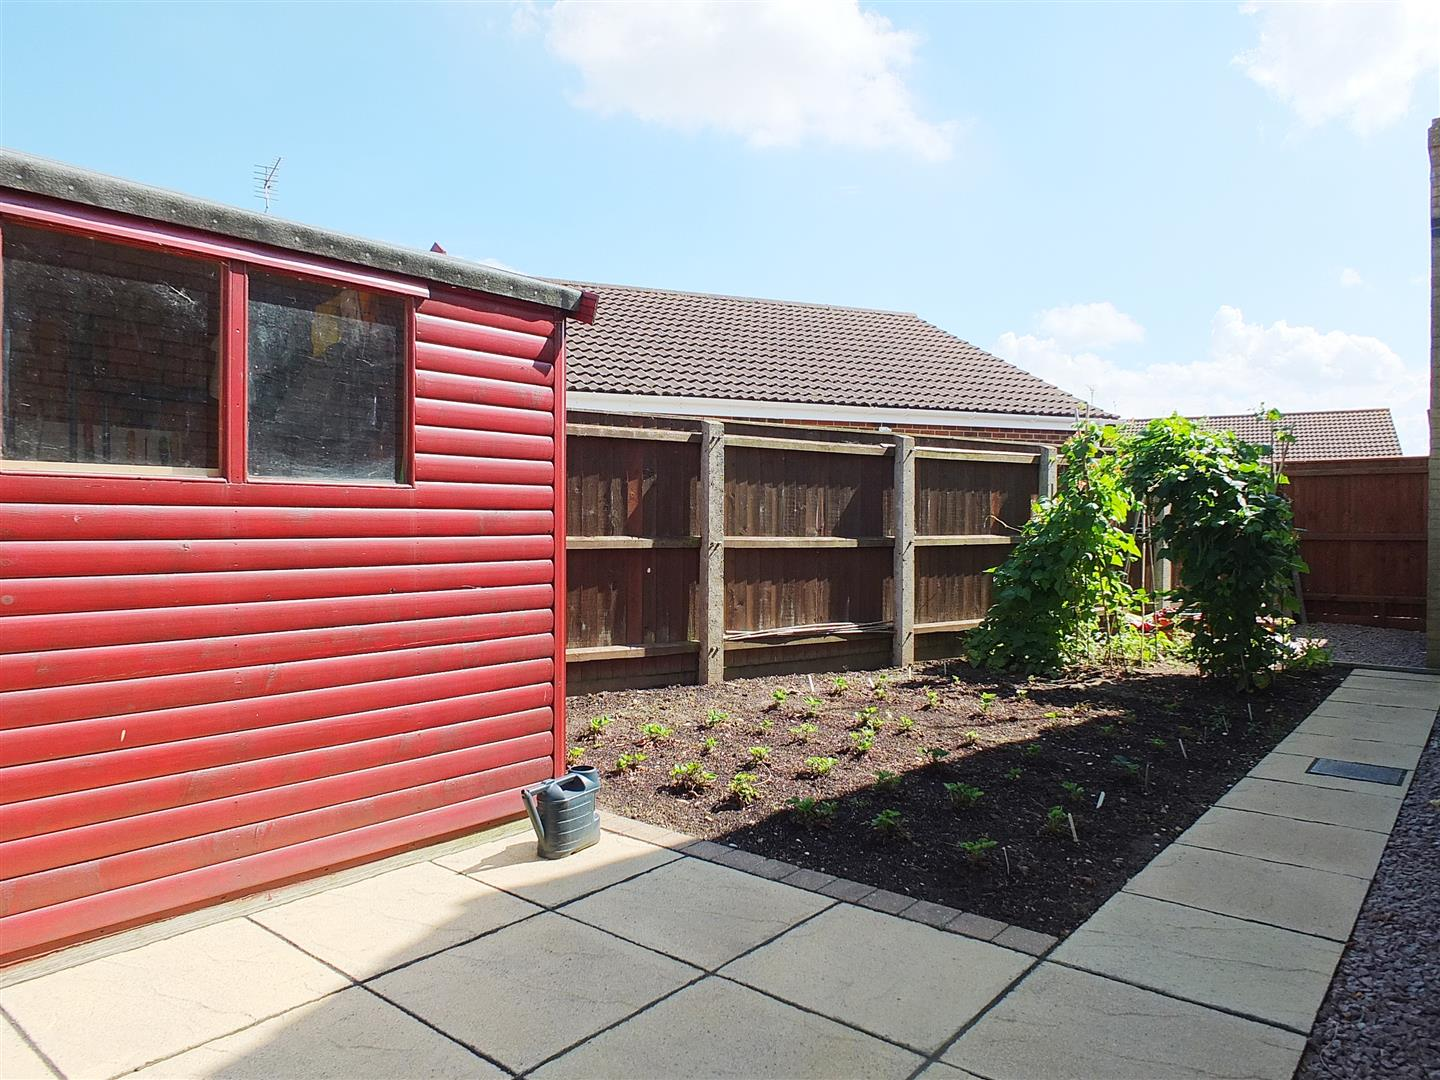 3 bed detached bungalow for sale in Long Sutton Spalding, PE12 9FT 17